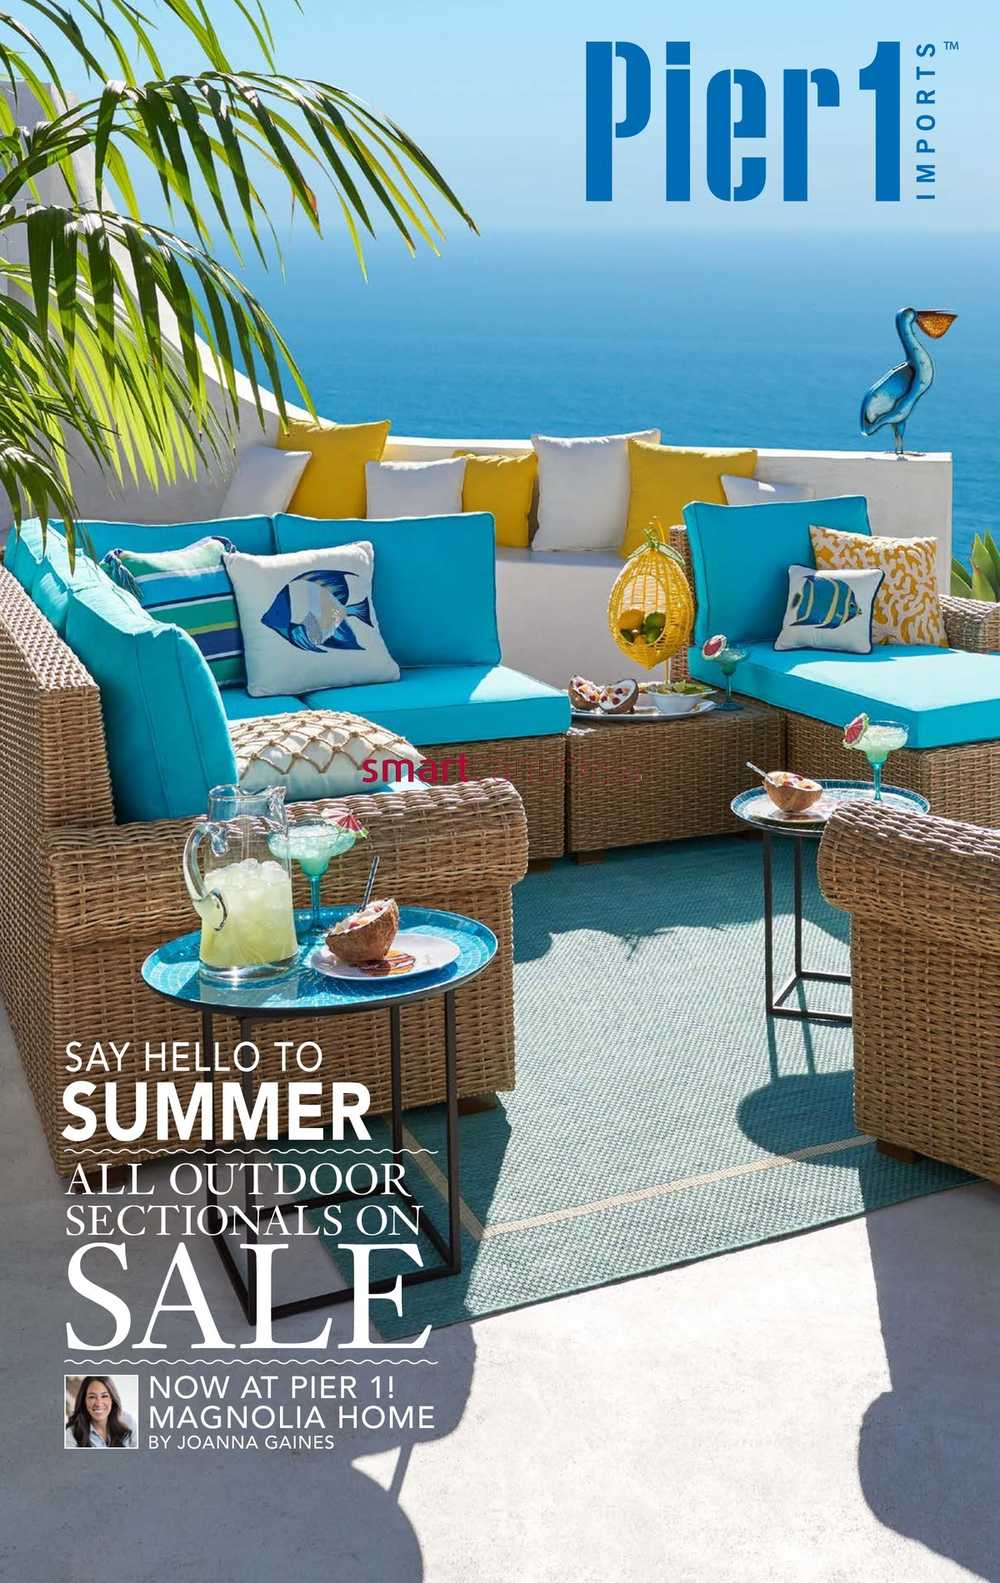 Pier 1 Imports Flyer April 17 to May 29. Pier 1 Imports Canada Flyers